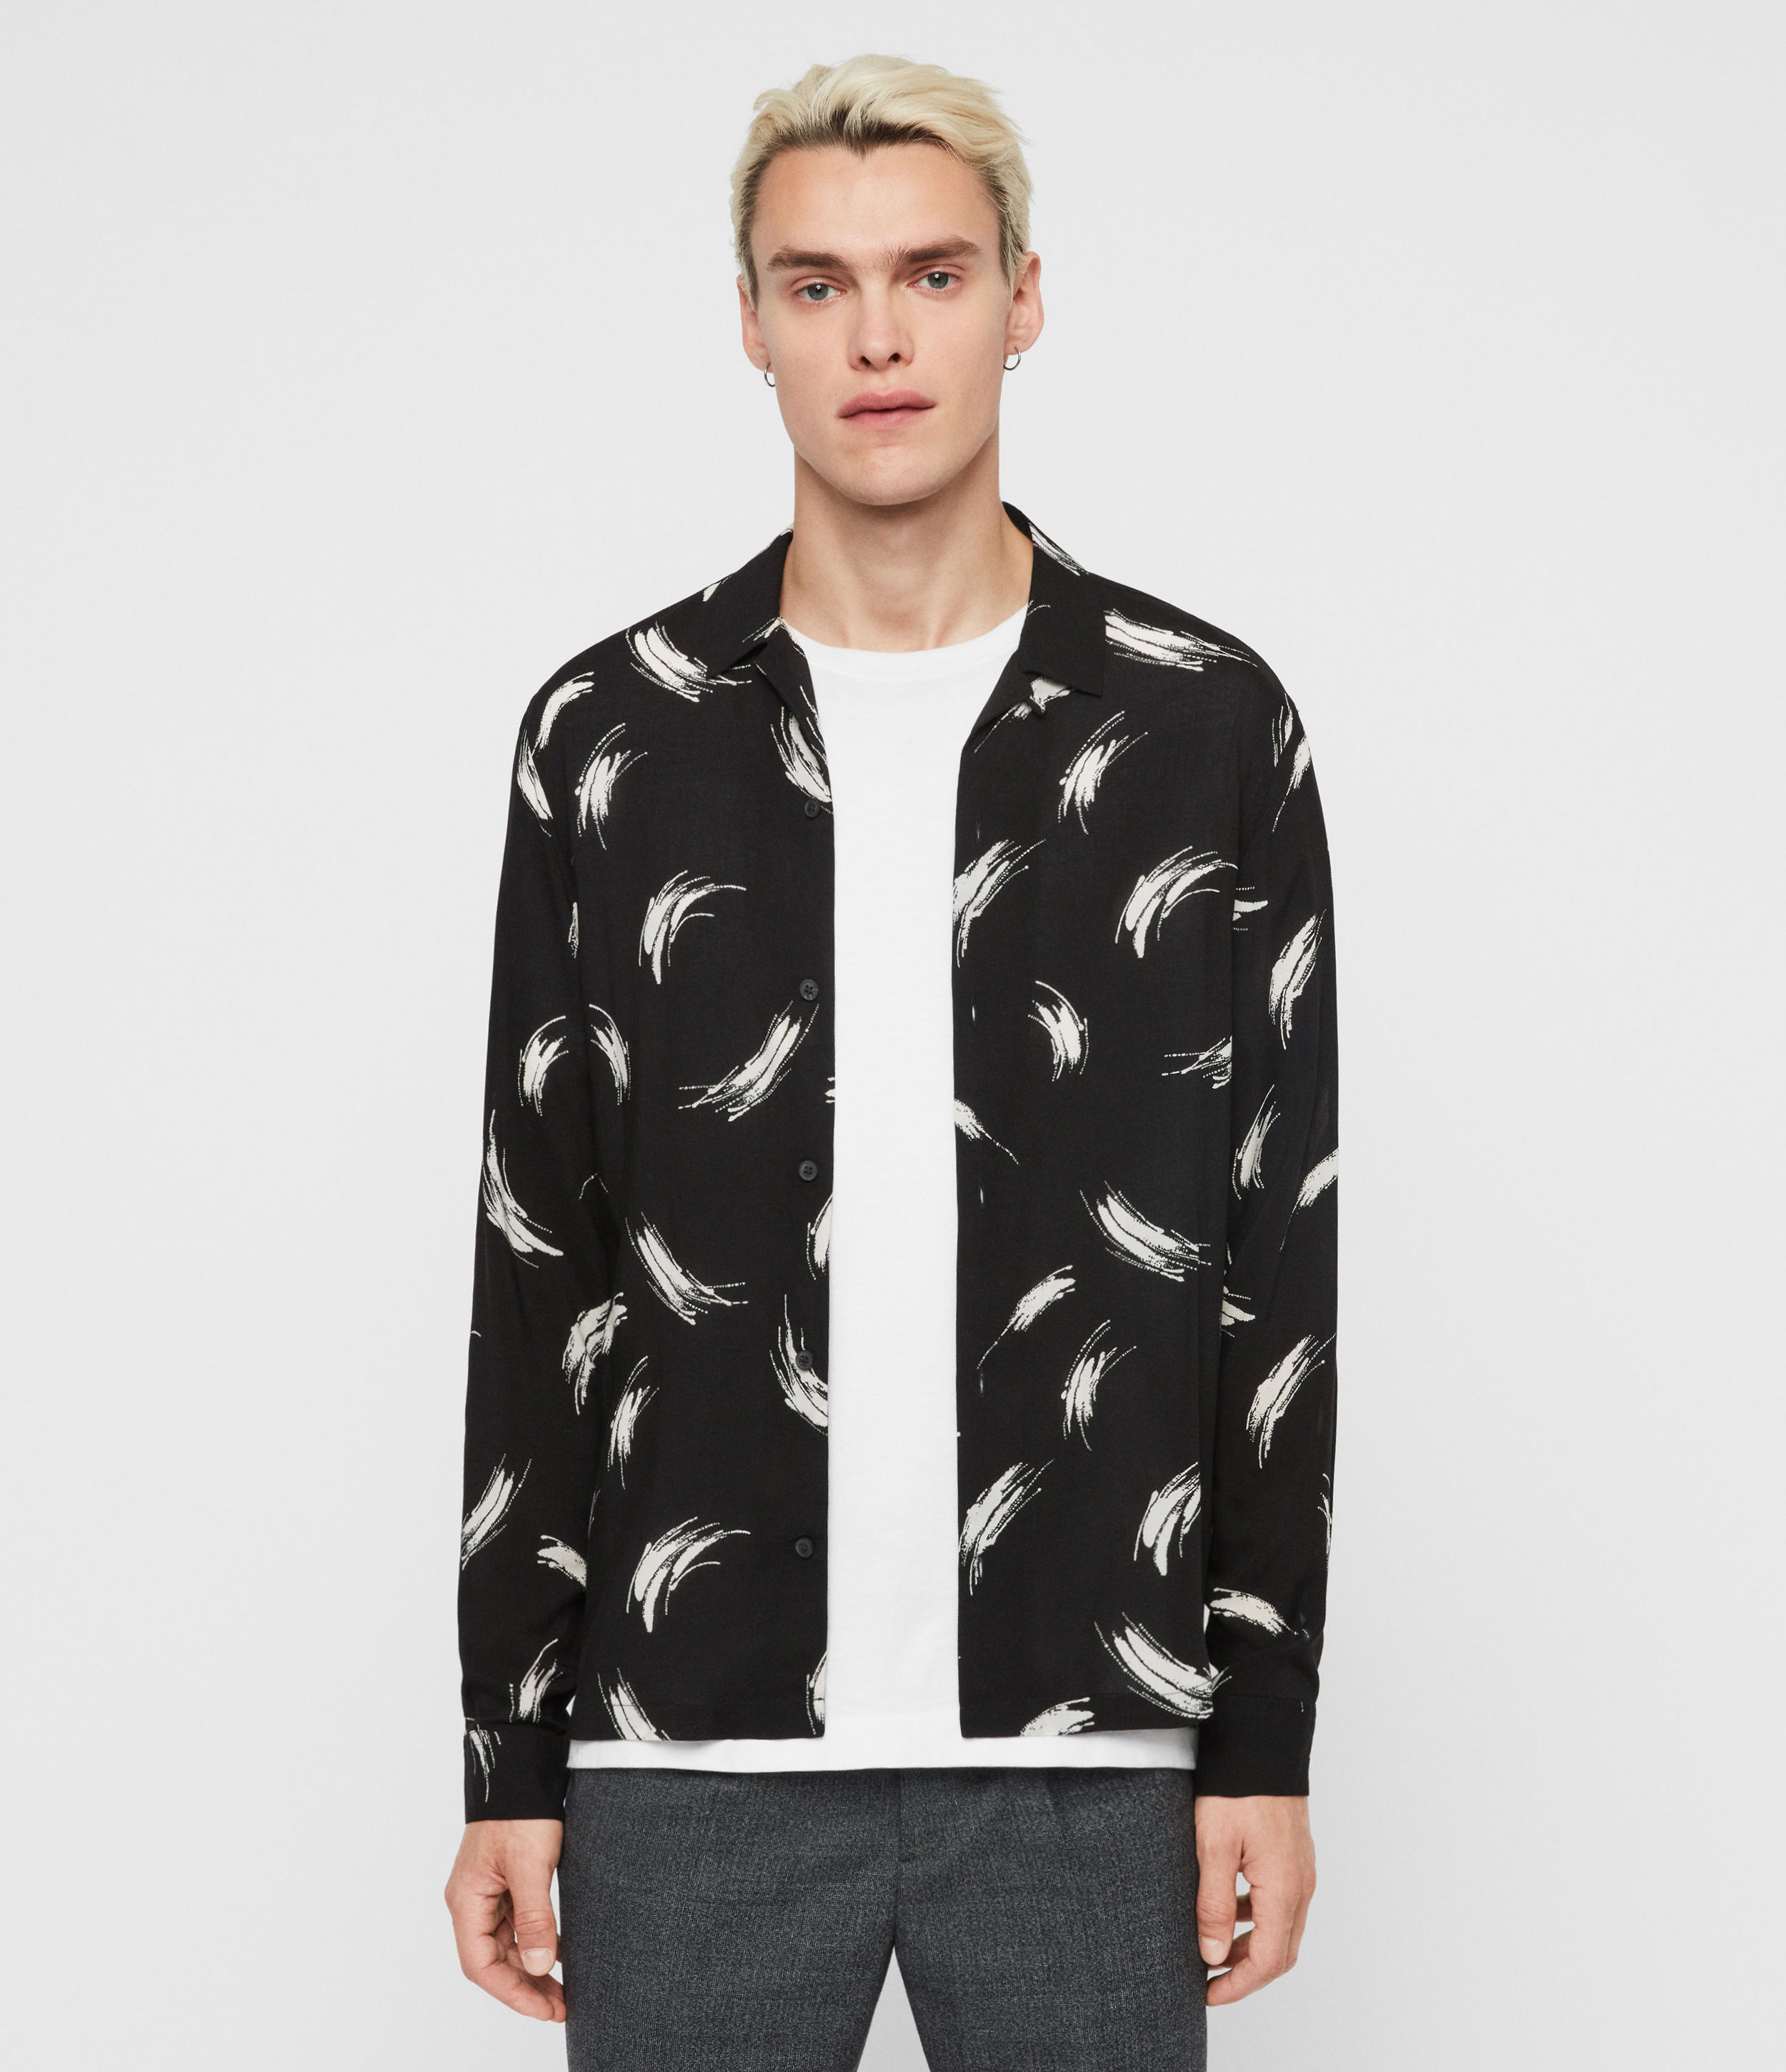 AllSaints Men's Floral Lightweight Stroke Long Sleeve Shirt, Black and White, Size: XL